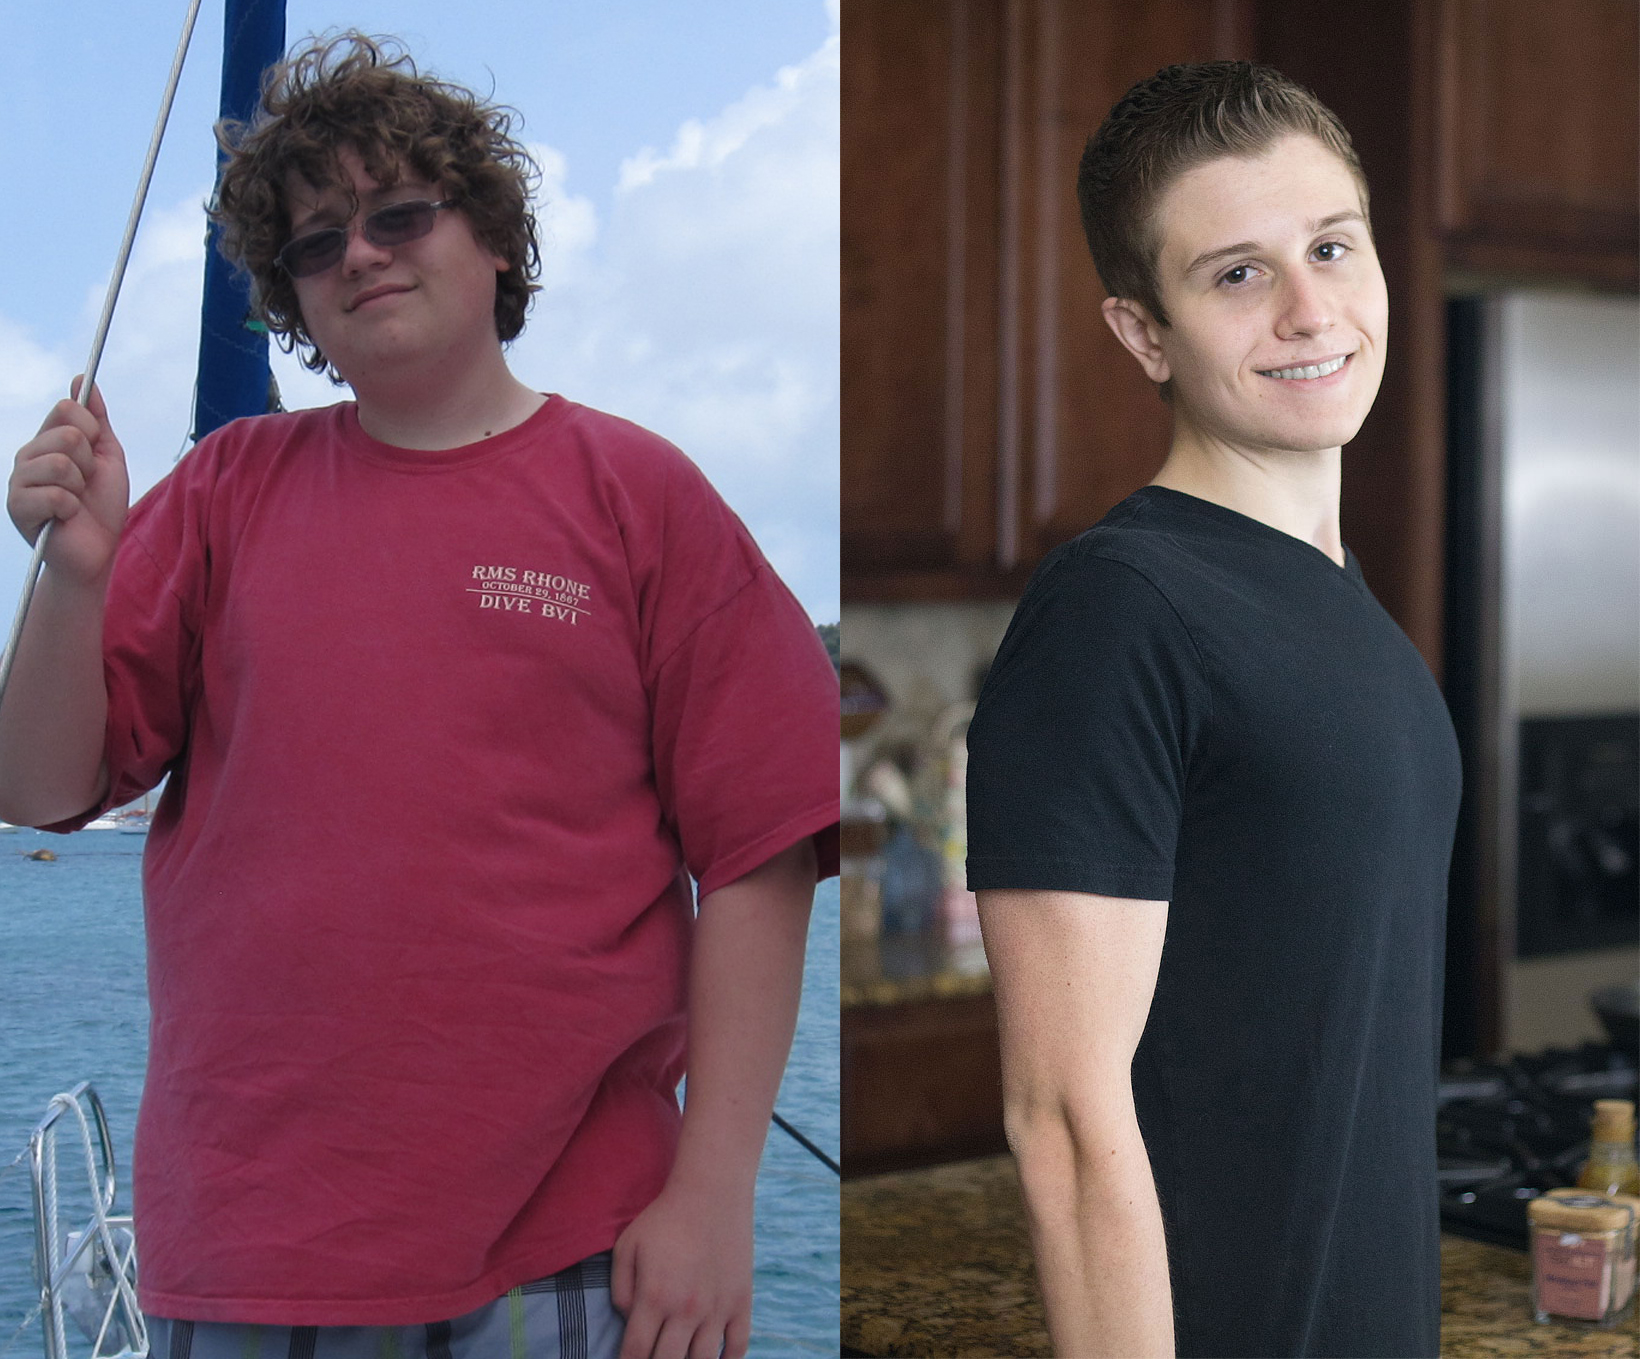 My Weight Loss Journey To Health and Beyond (Before and After Photos)